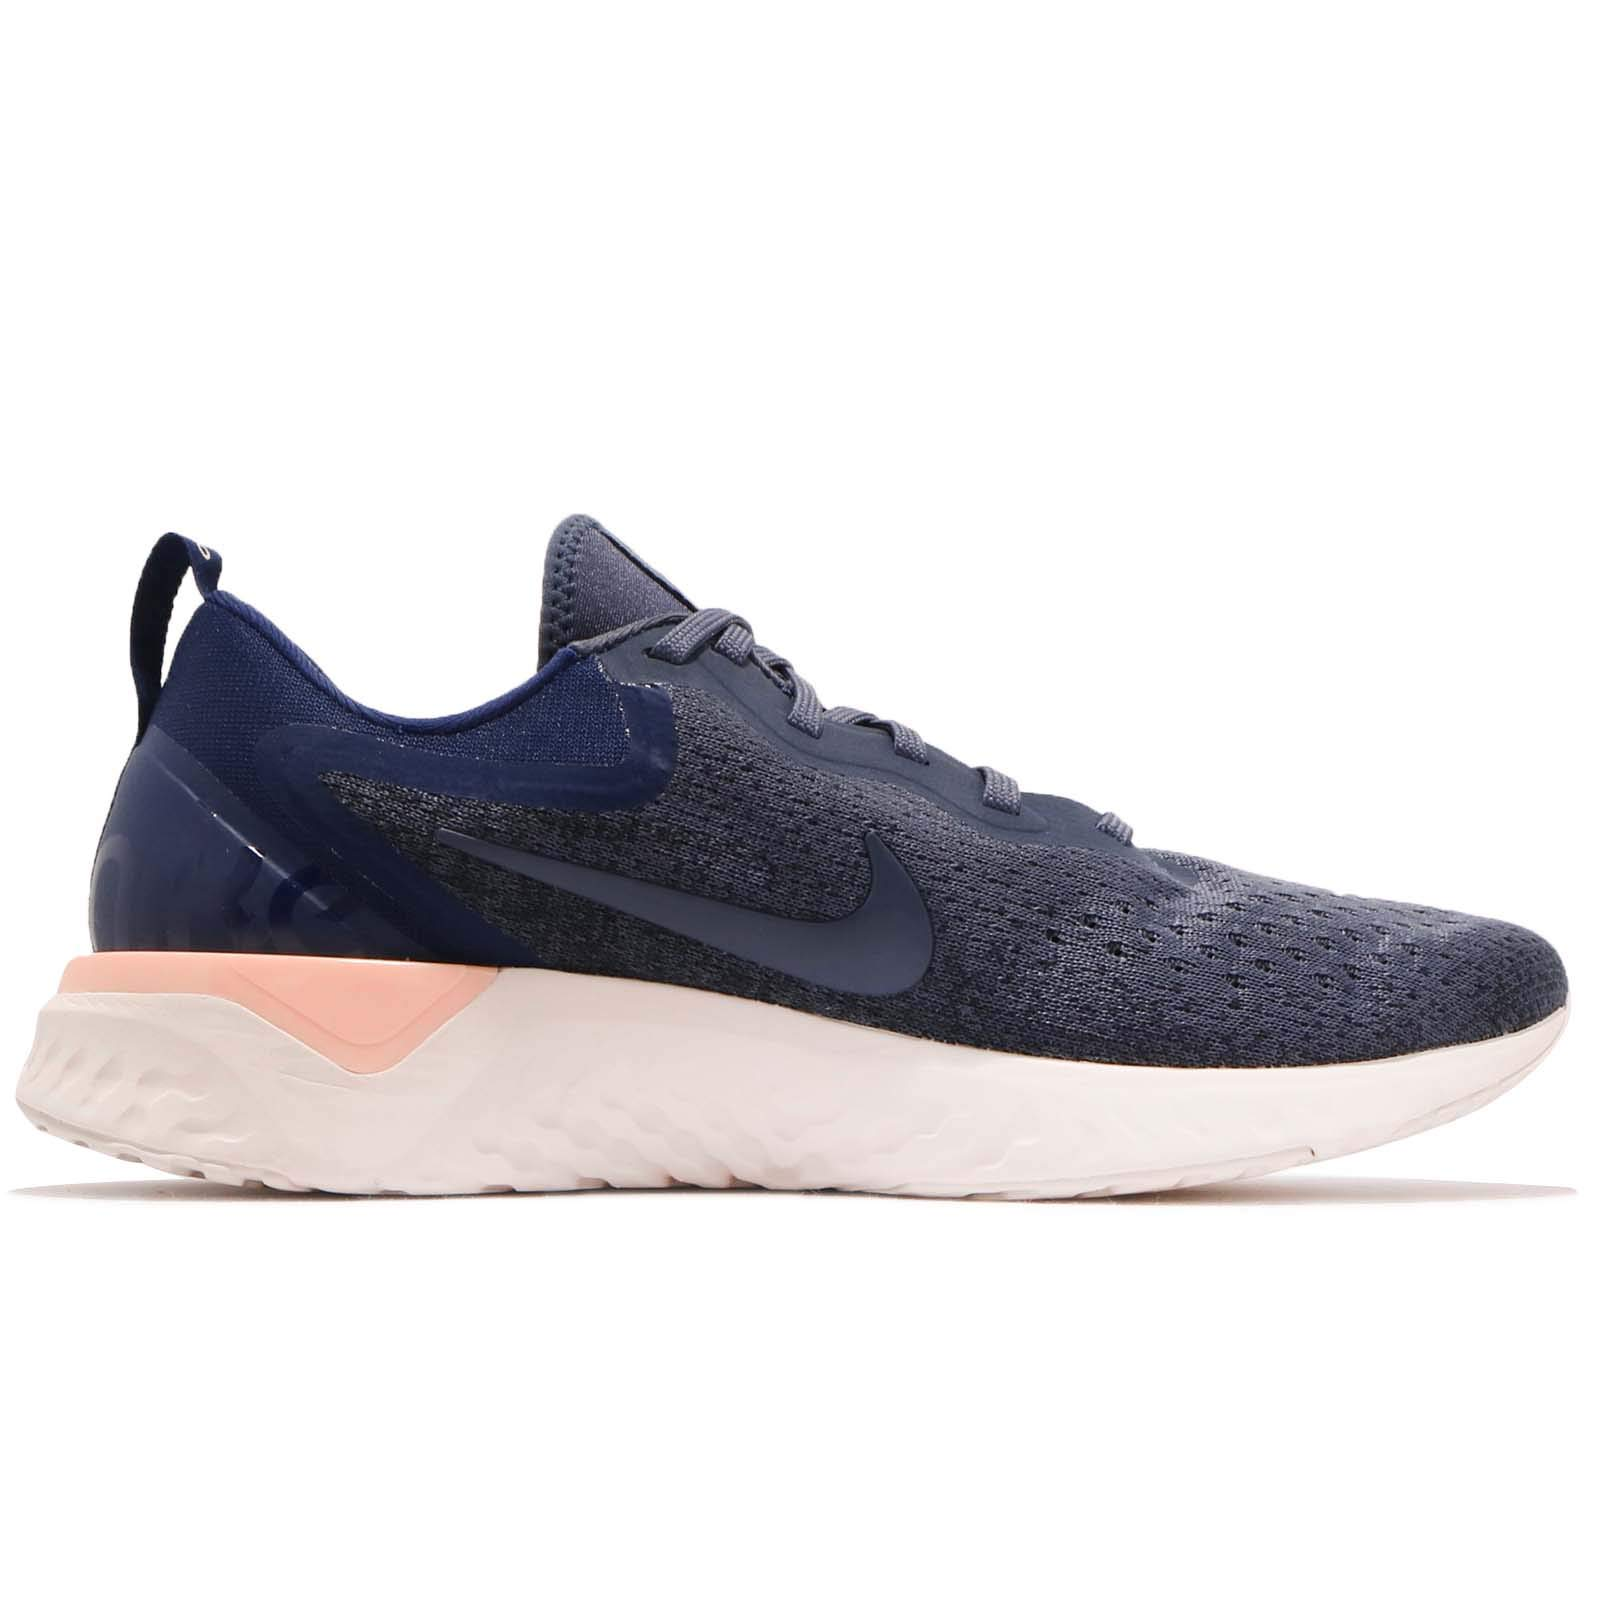 Nike Odyssey React Mens Running Trainers AO9819 Sneakers Shoes (UK 6 US 6.5 EU 39, Thunder Blue 403) by Nike (Image #2)